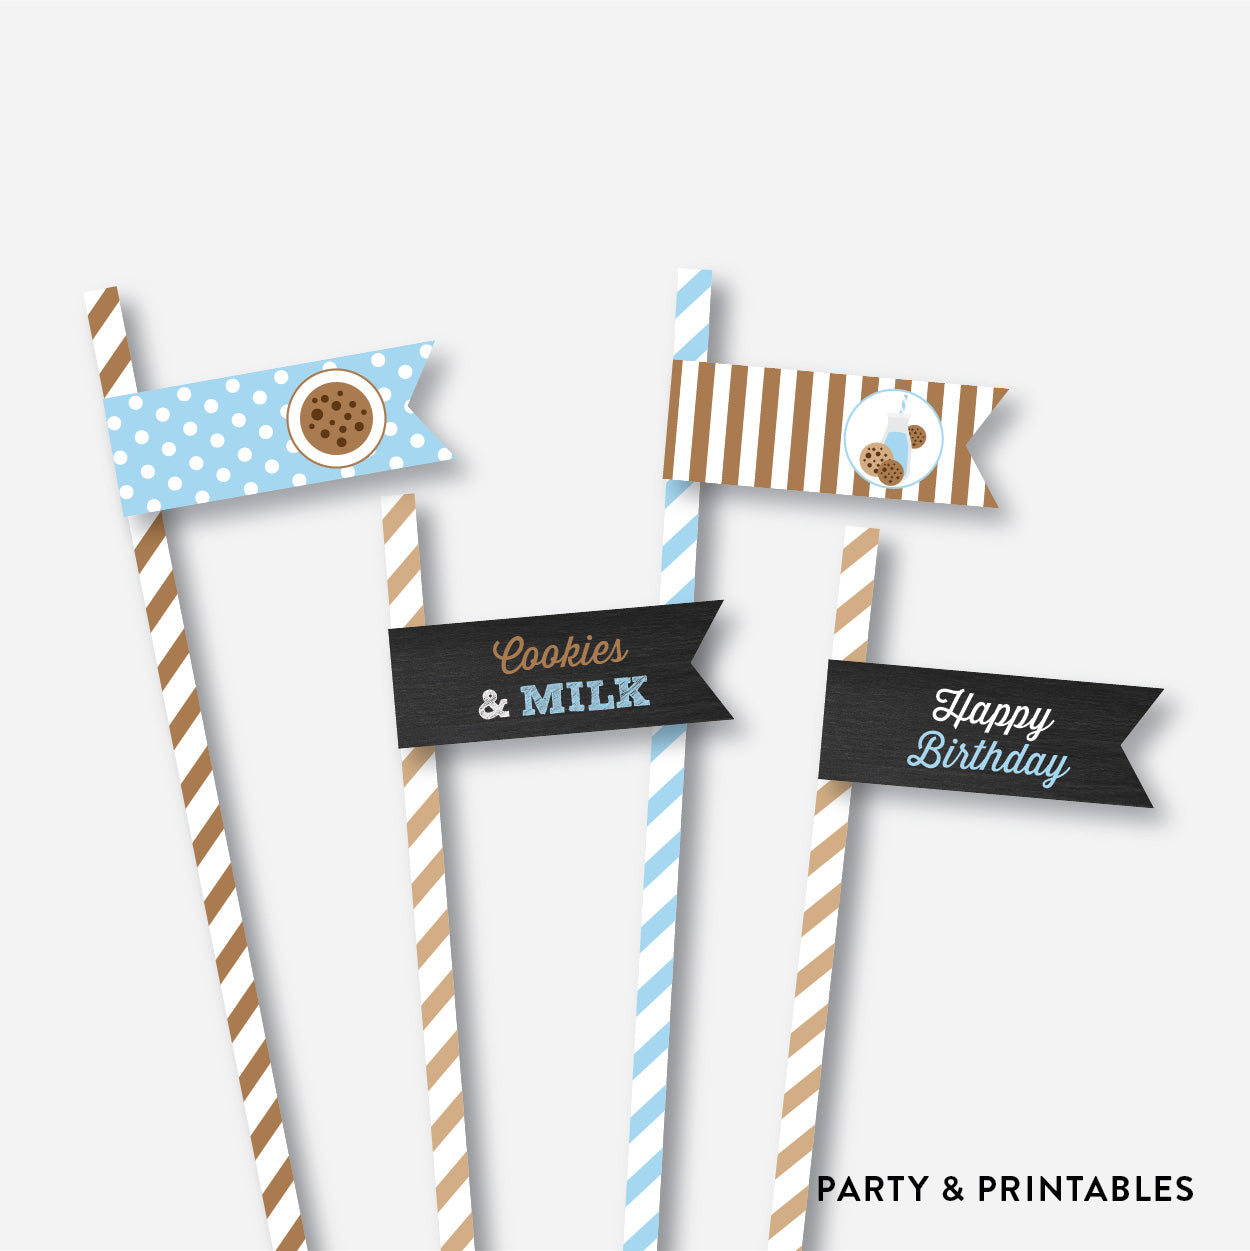 Cookies and Milk Chalkboard Straw Flags / Non-Personalized / Instant Download (CKB.01), party printables - Party and Printables